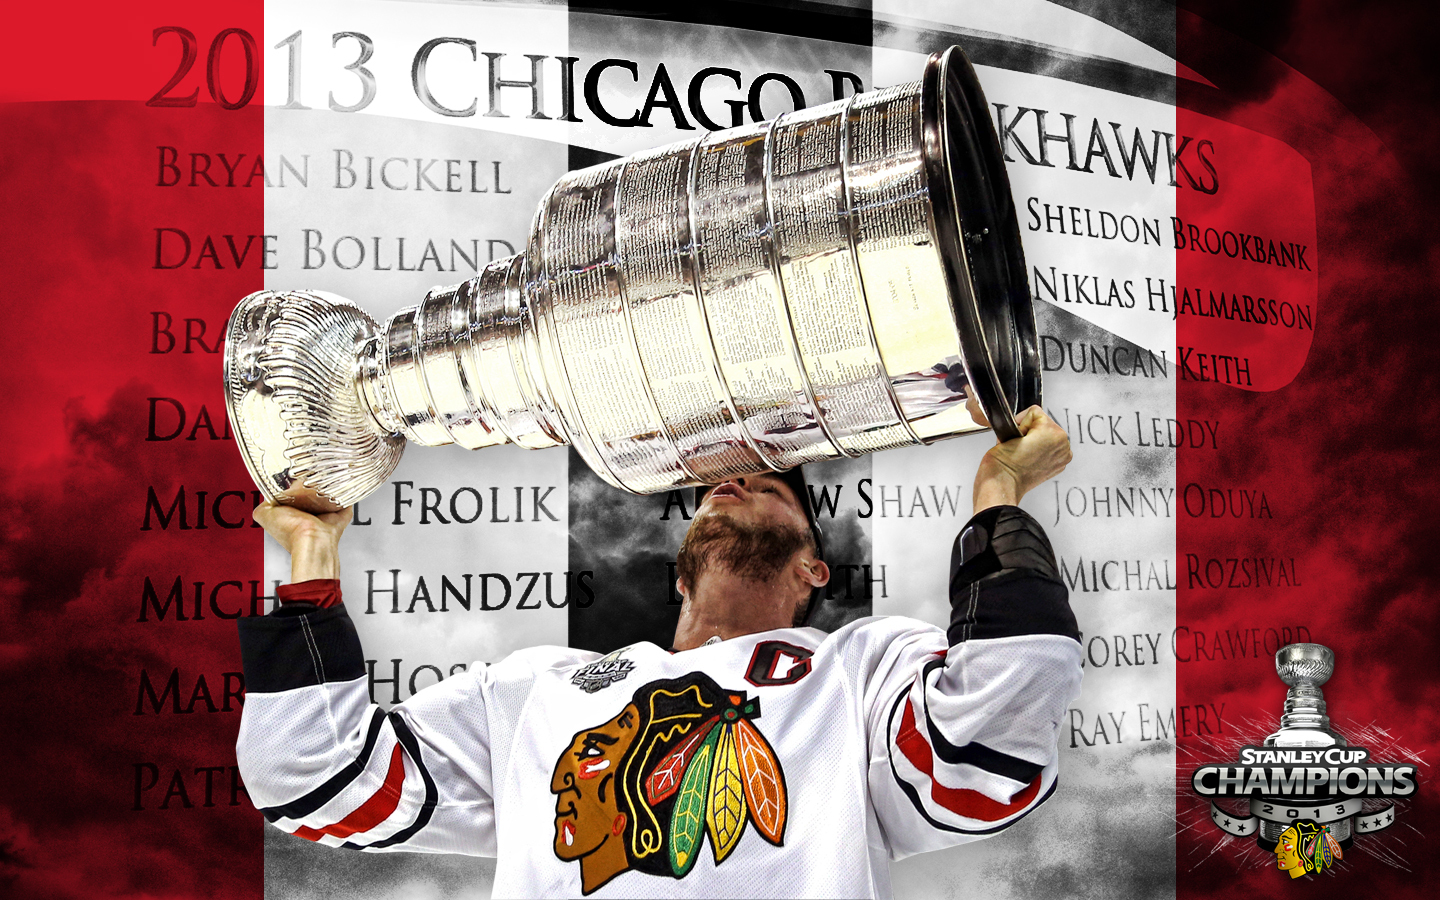 2013 stanley cup champs 2013 stanley cup champs 2 1440x900